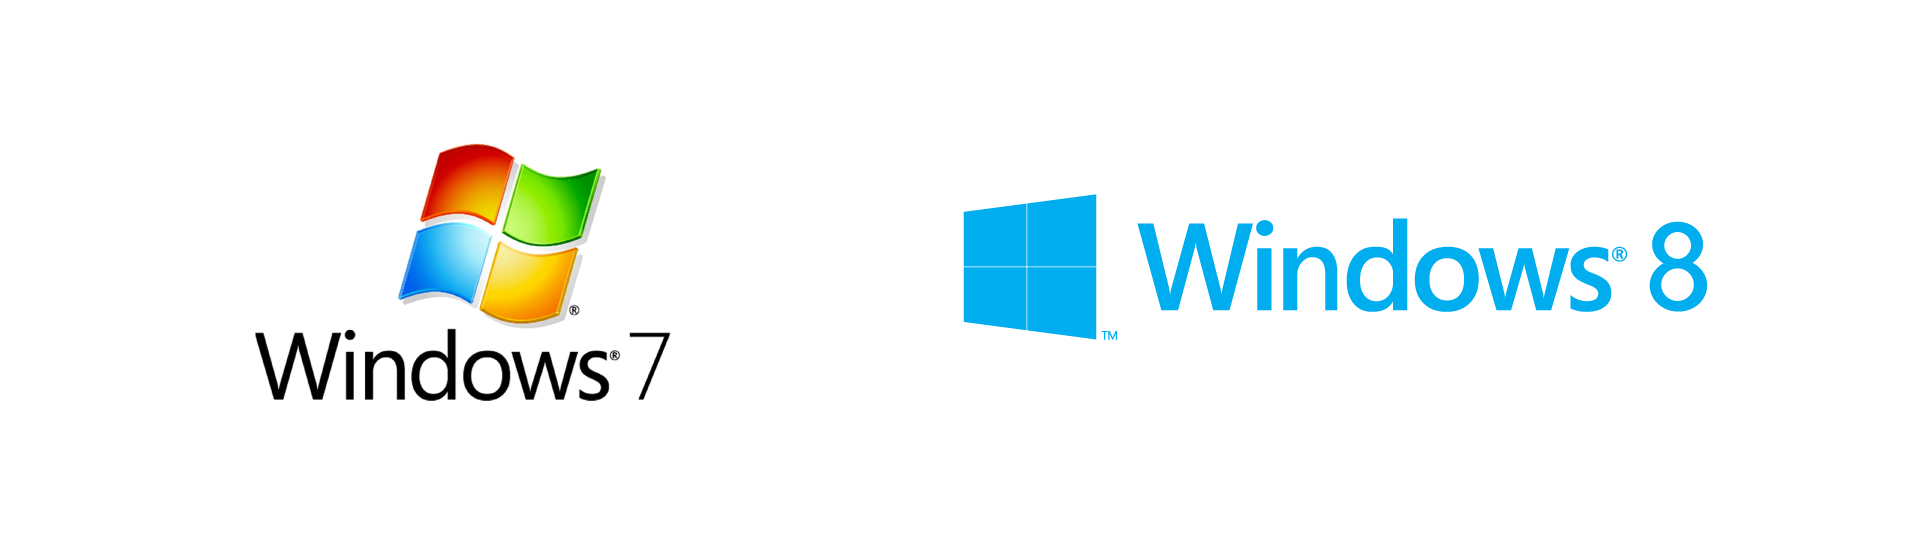 Windows-update-the-change2.png